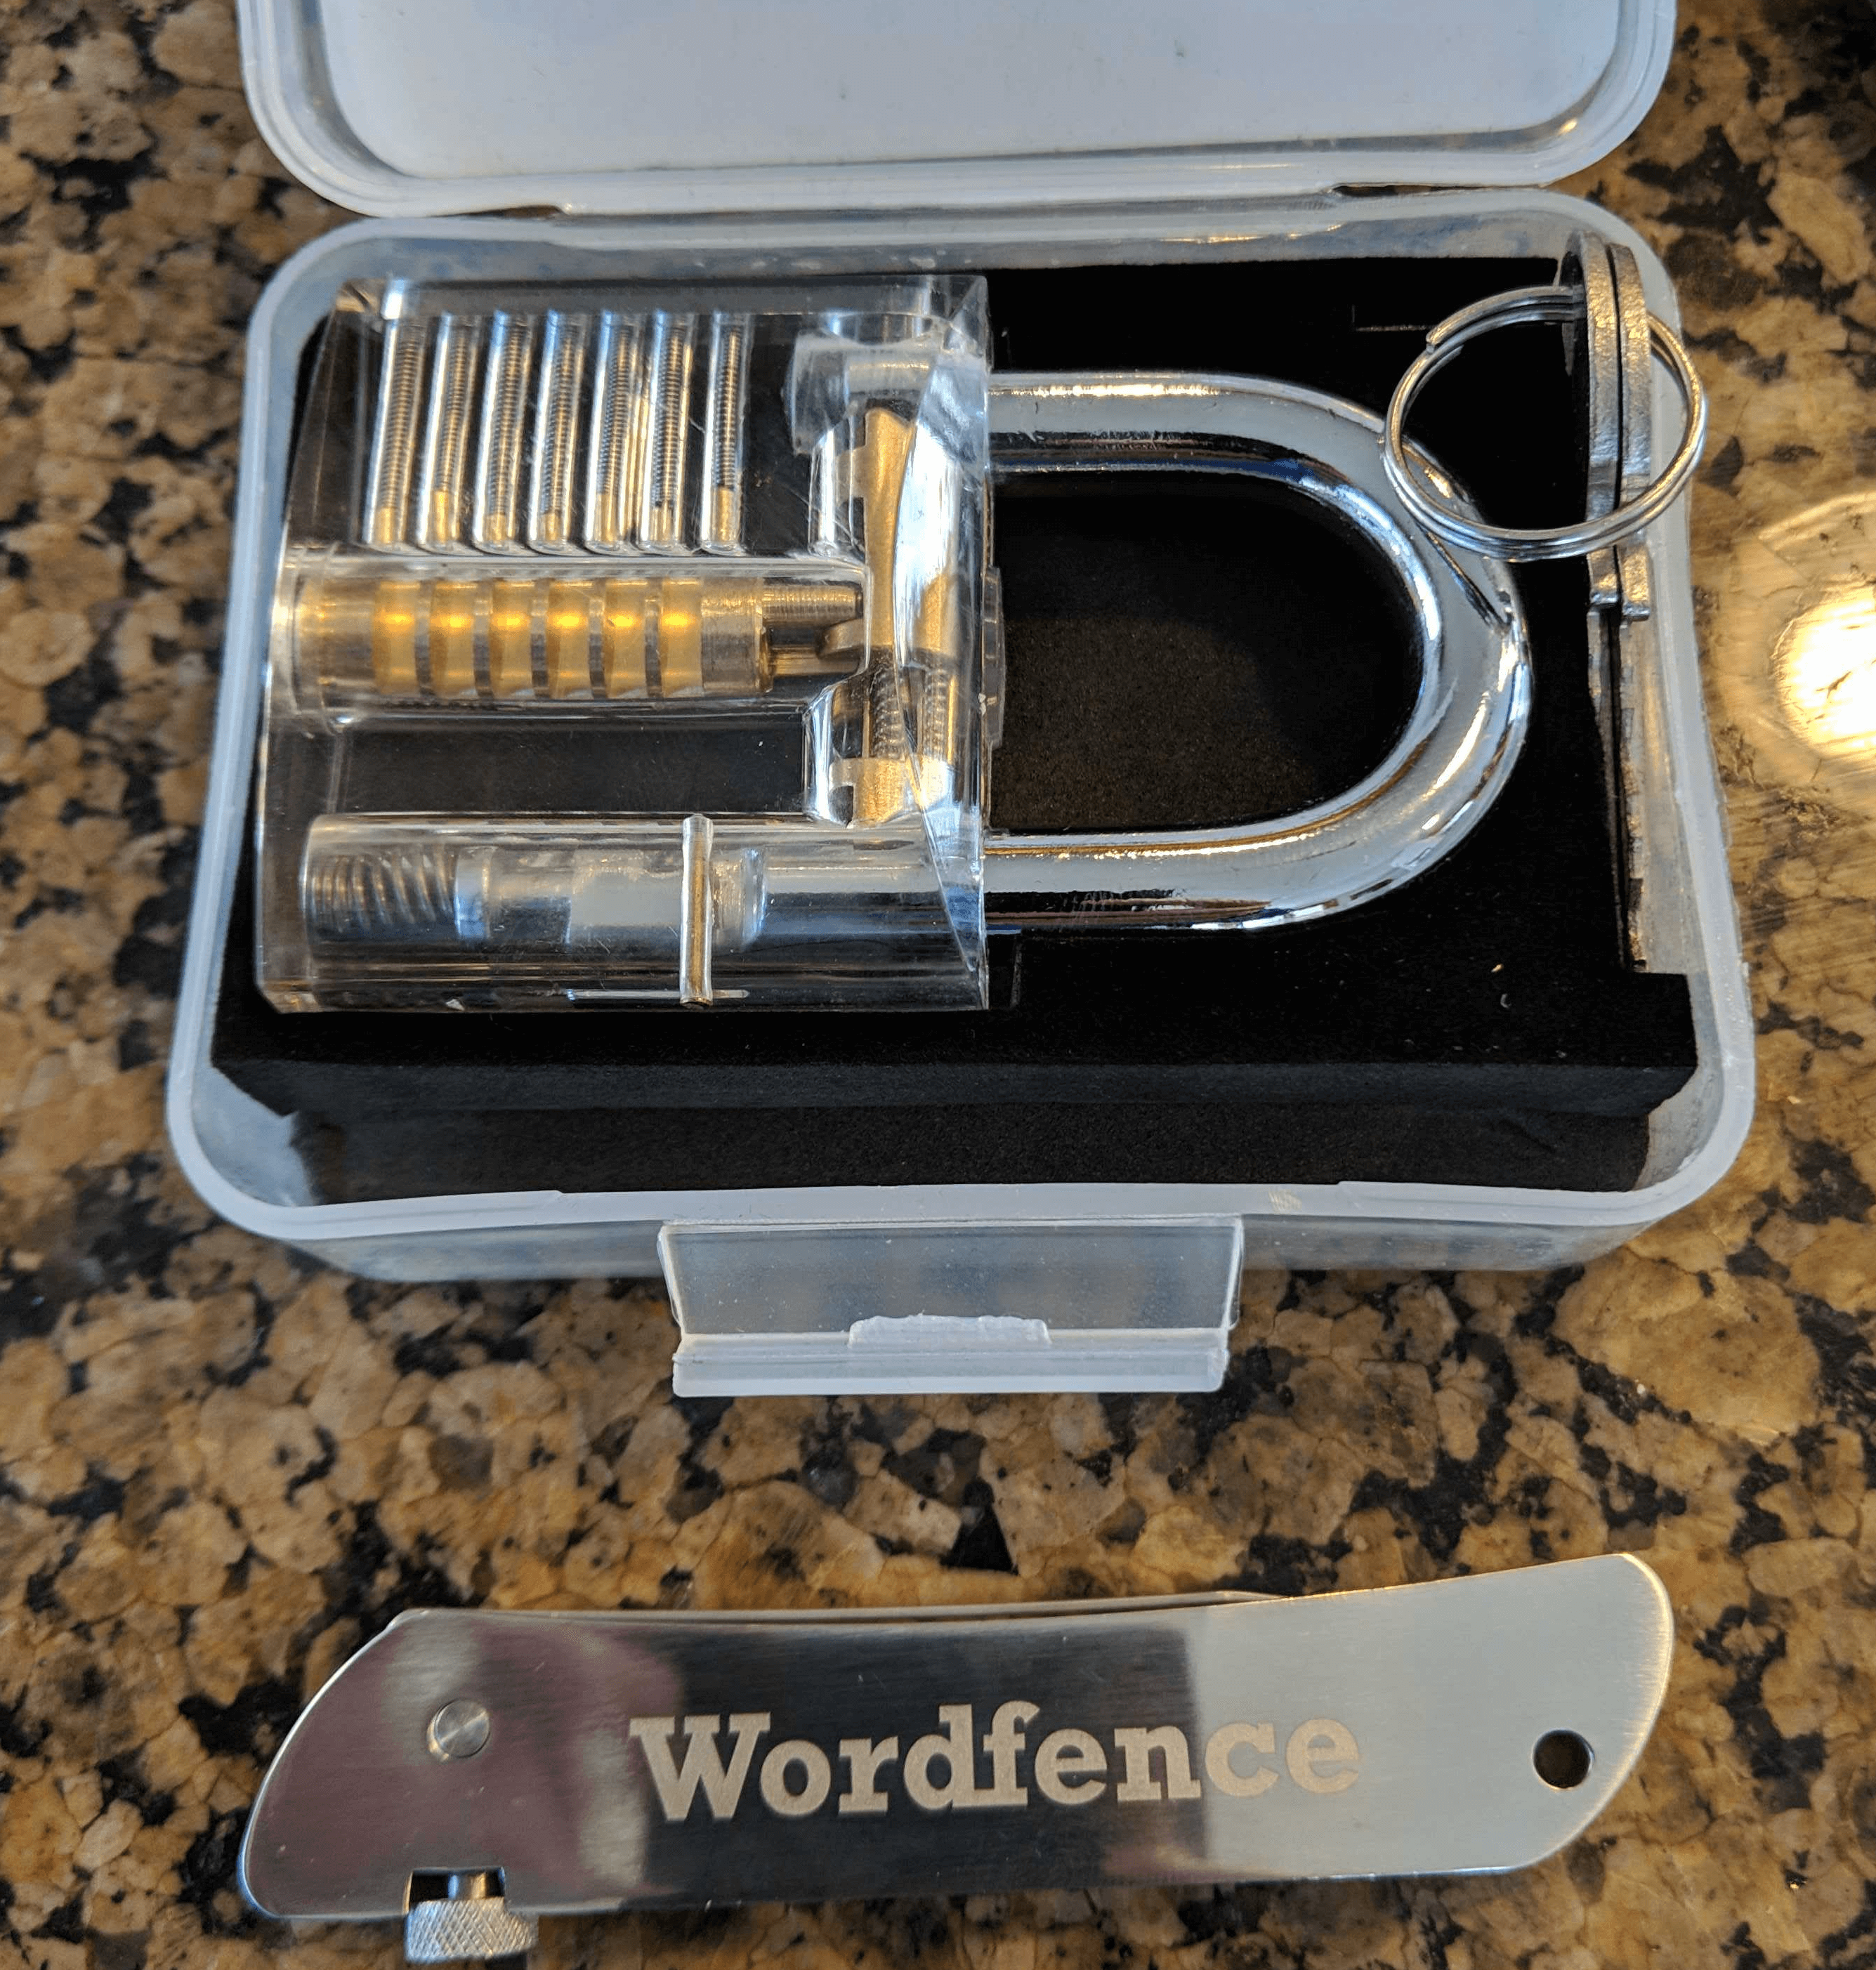 2019 Wordfence lockpick set